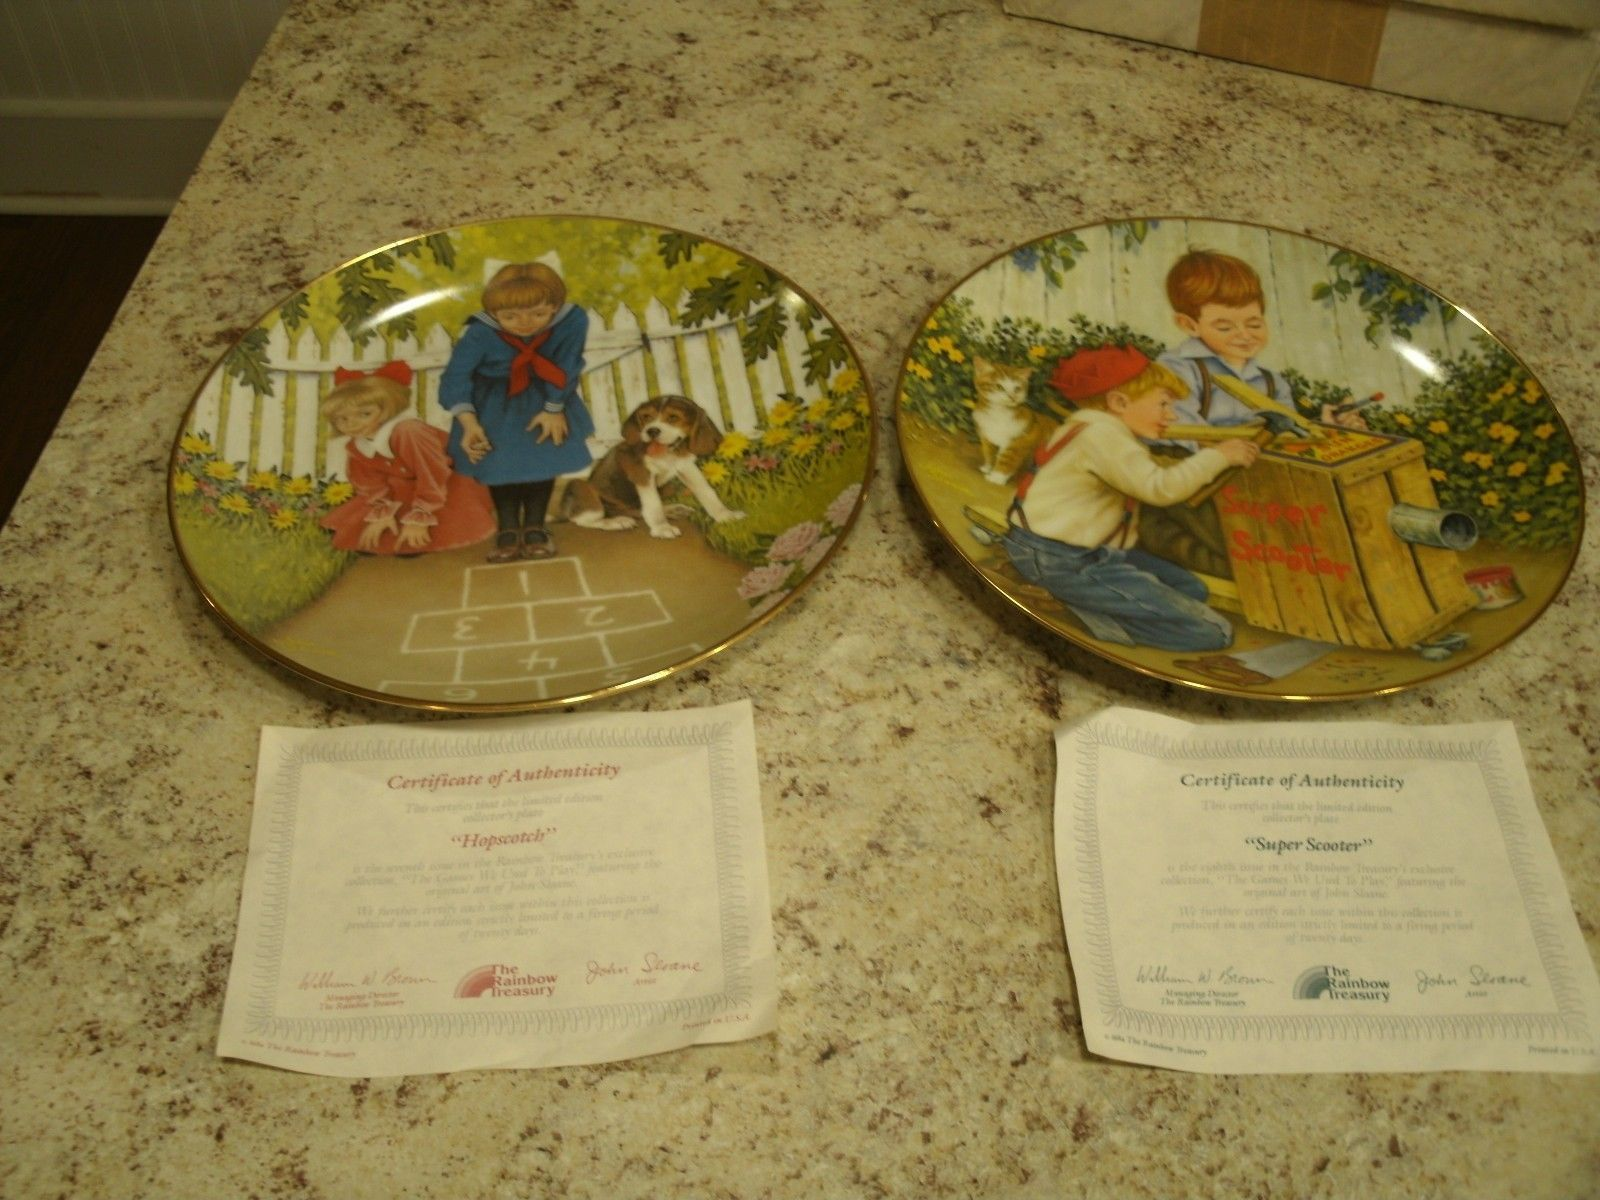 Two VTG 1985 Rainbow Treasury Hopscotch / Super Scooter Collector Plates w COAs